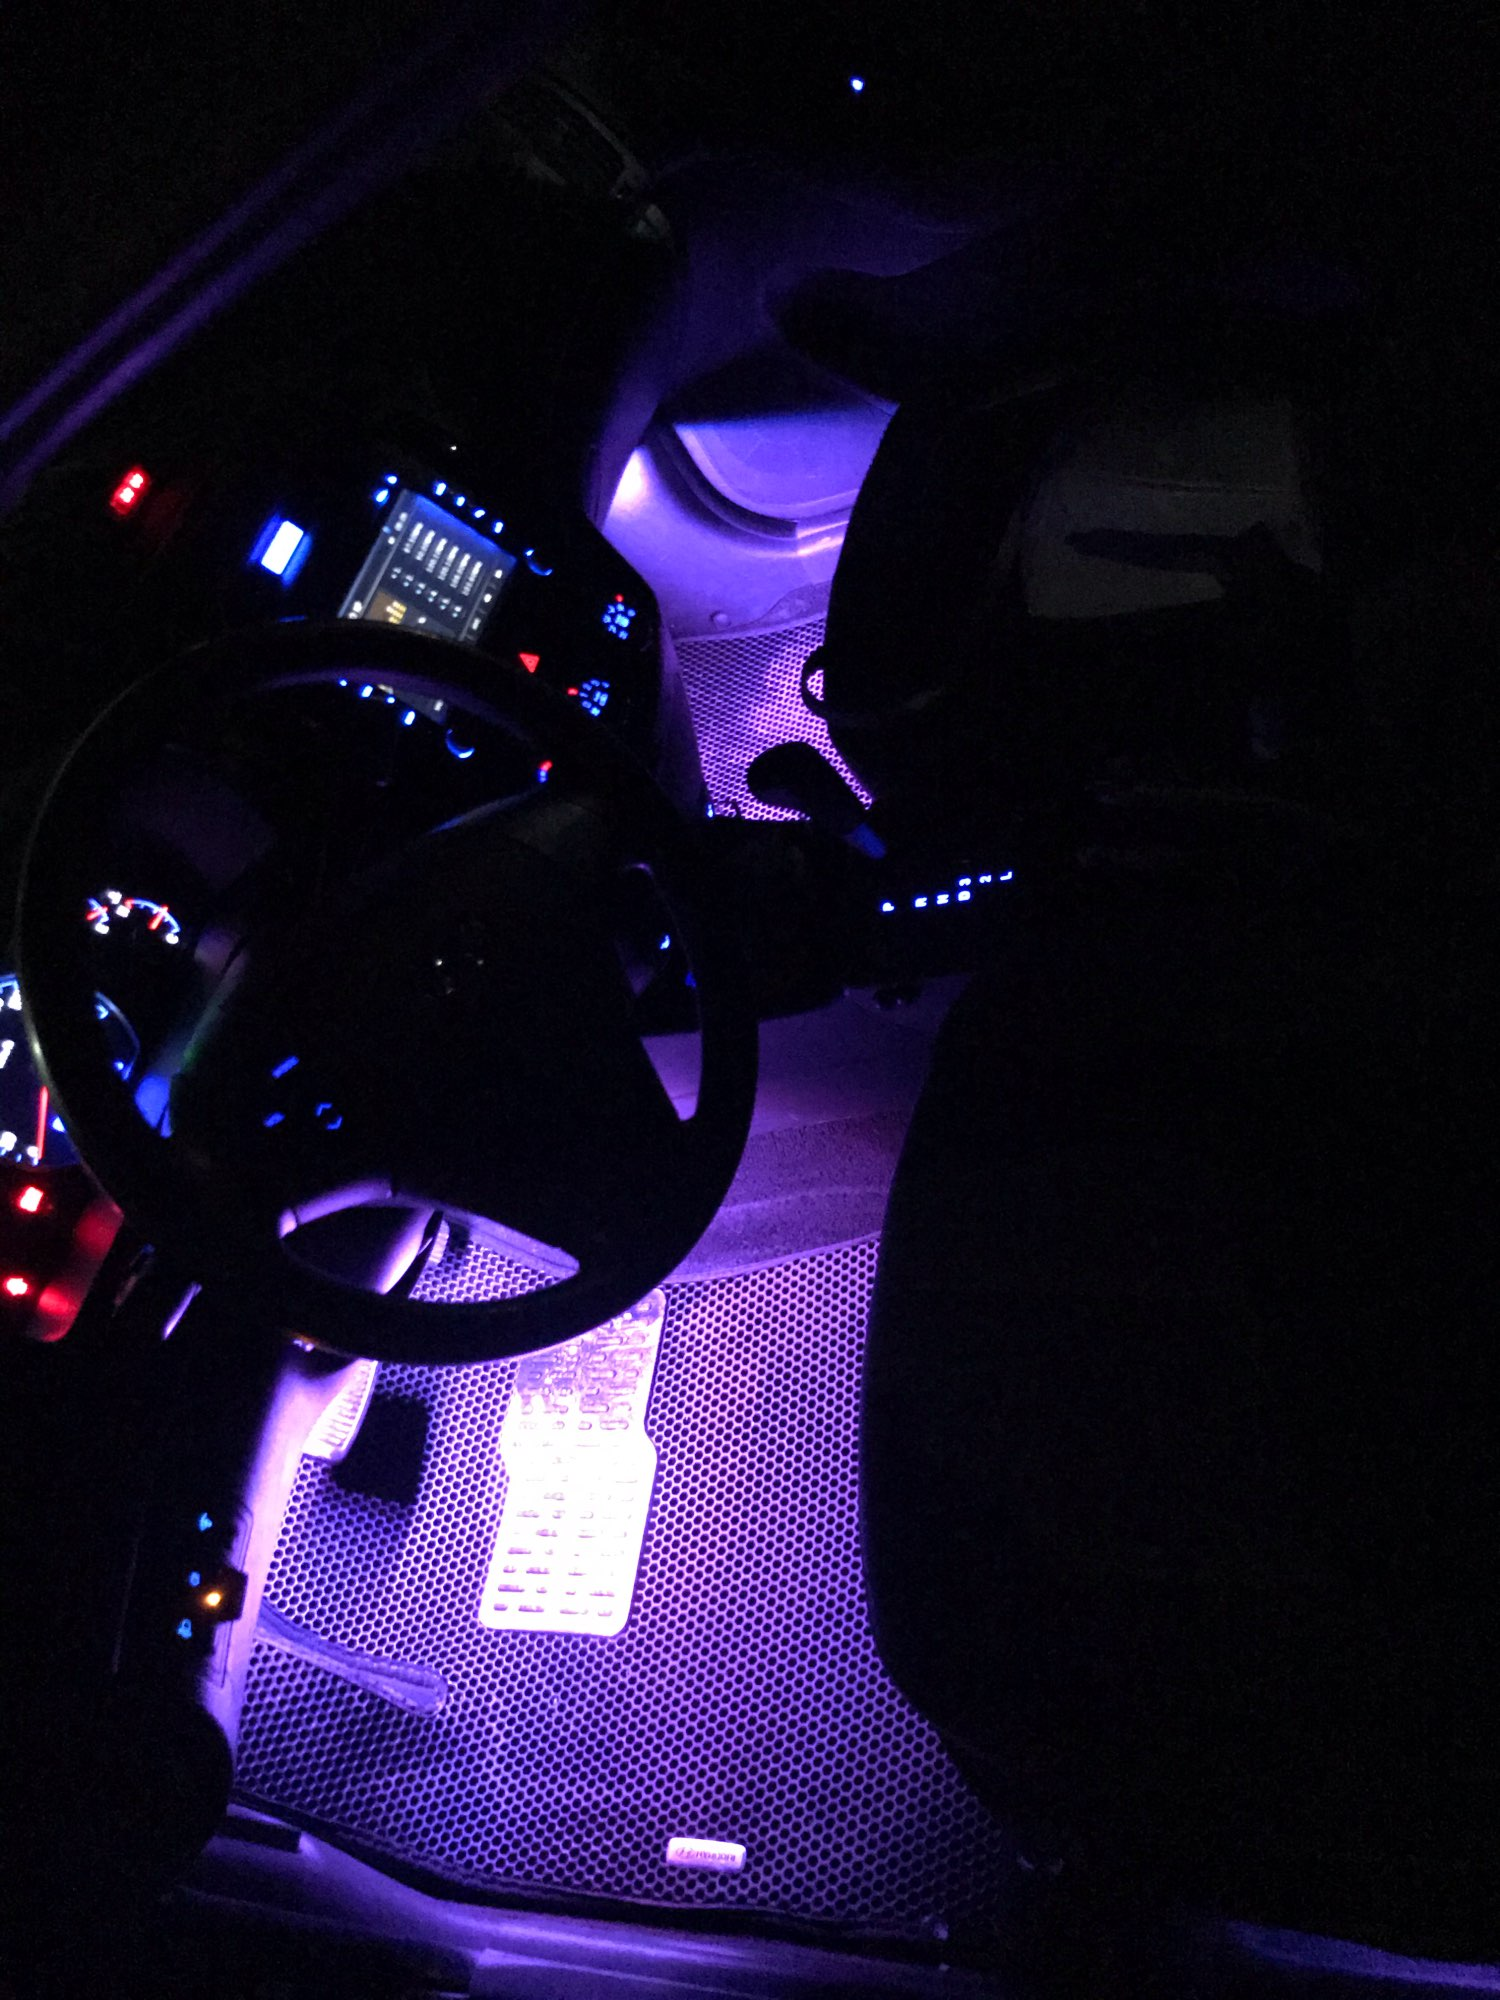 The last day-Car Interior Ambient Lights(Contains four light bars) - notabshop photo review